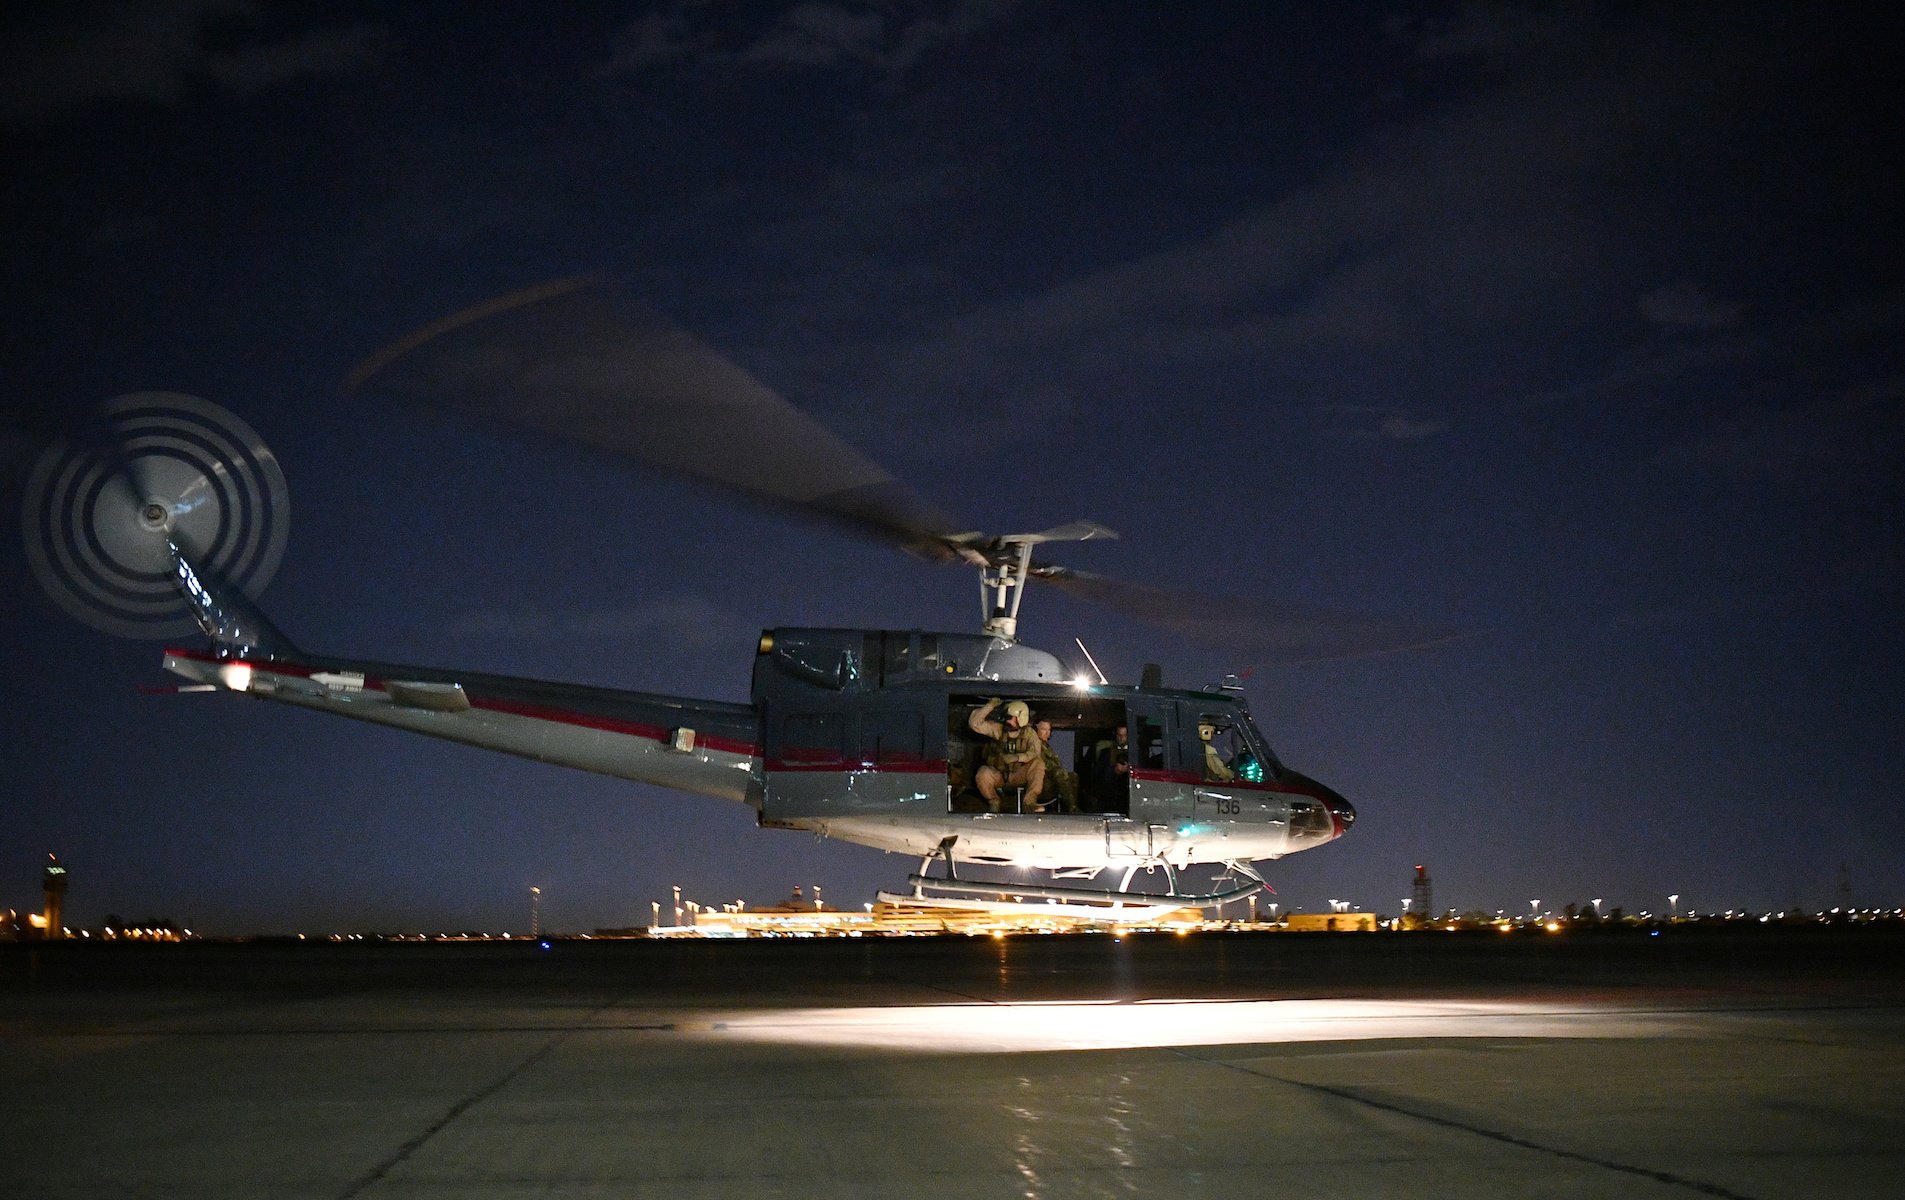 A helicopter carrying U.S. Secretary of State Mike Pompeo takes off from Baghdad International Airport in Baghdad